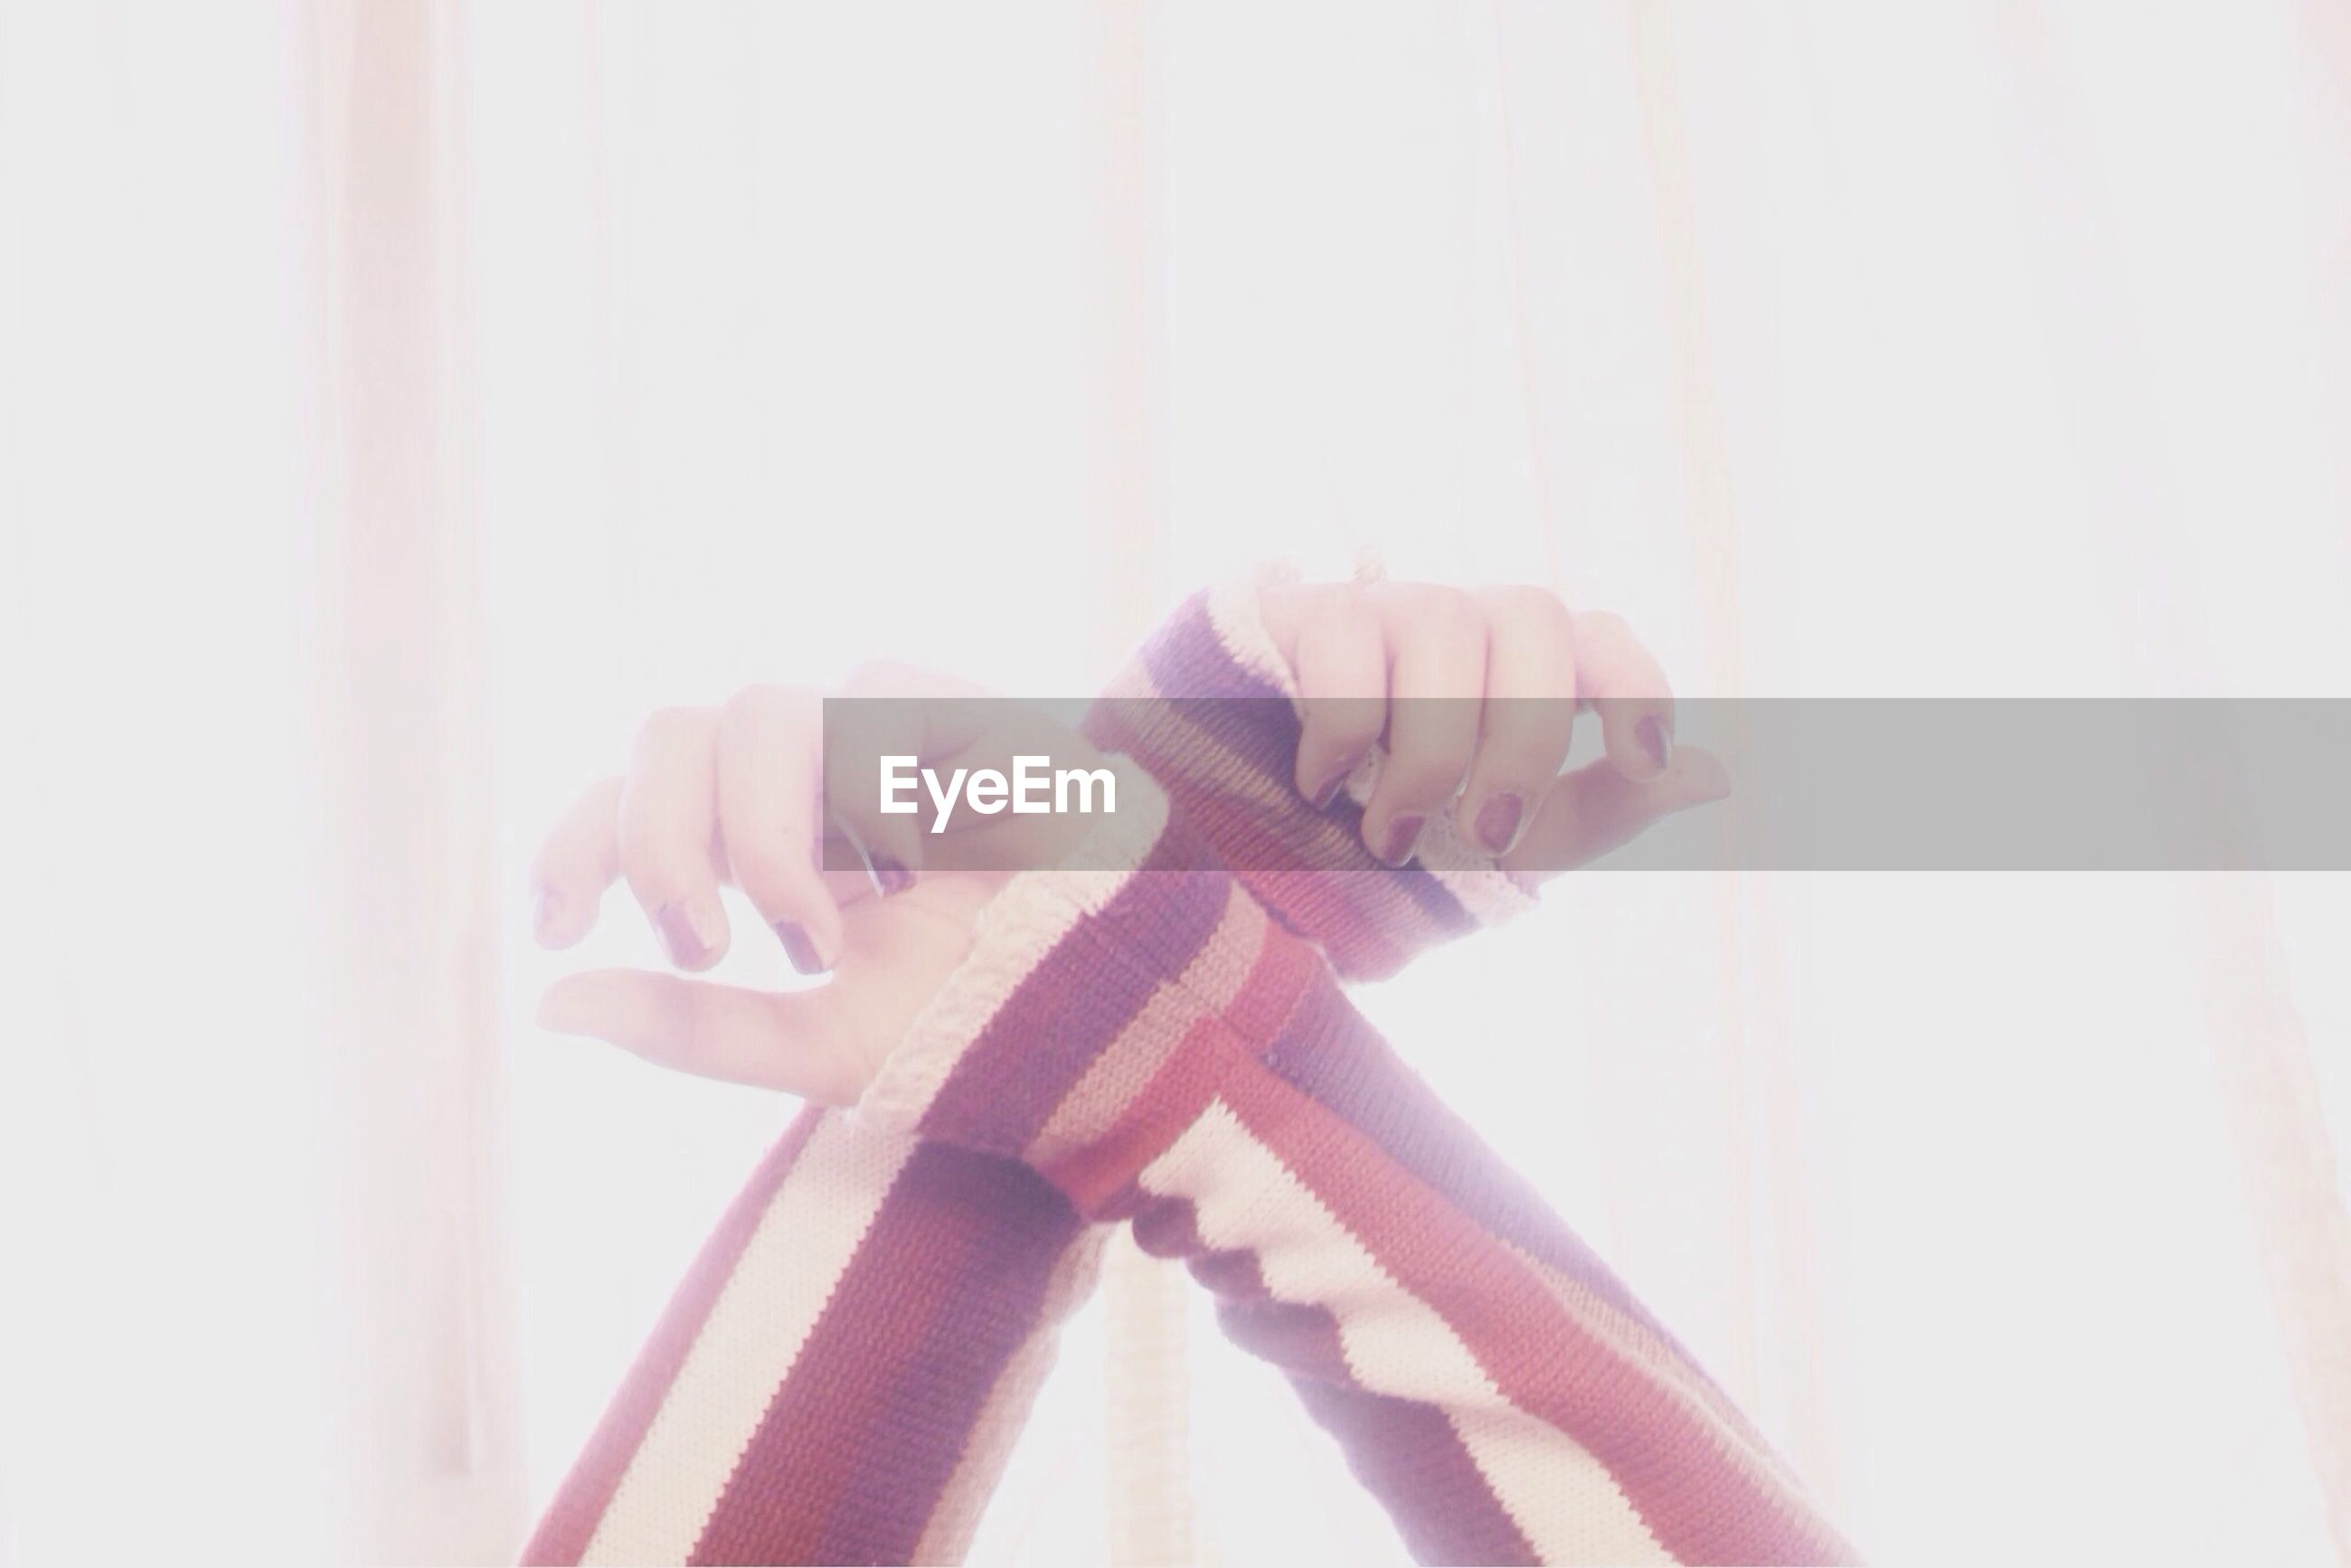 indoors, person, part of, home interior, cropped, close-up, wall - building feature, curtain, copy space, sunlight, human finger, lifestyles, holding, auto post production filter, day, side view